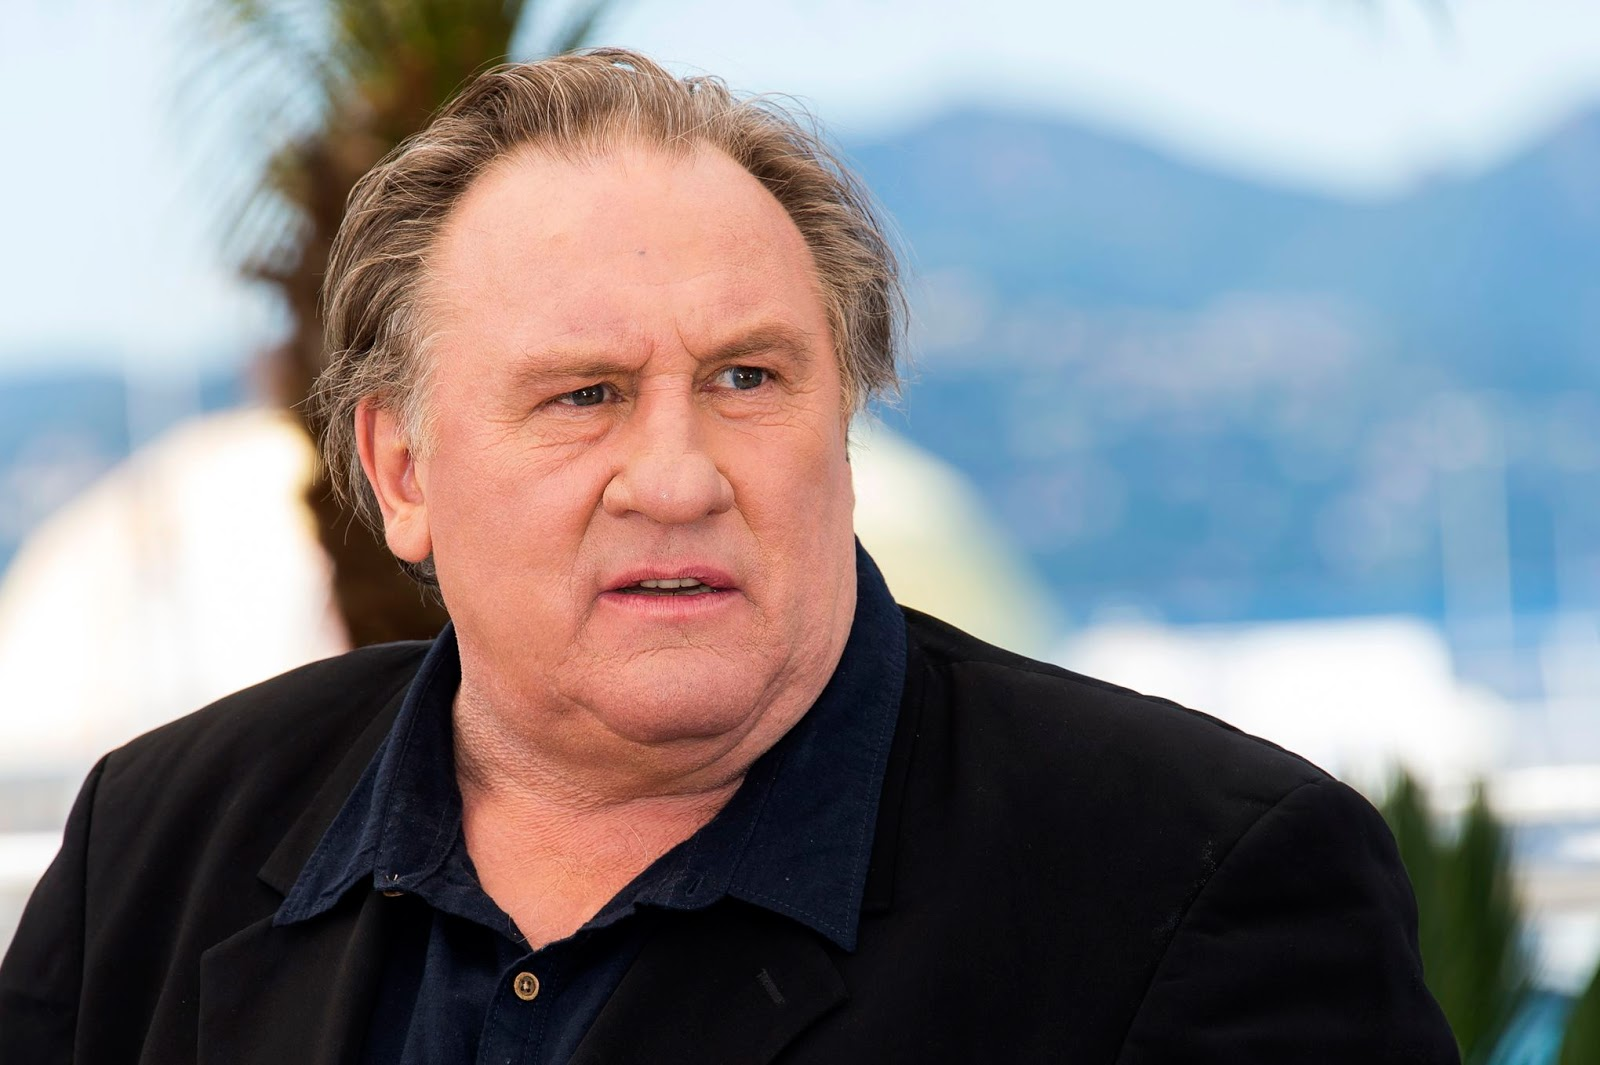 The Editor: GÉRARD DEPARDIEU AND HIS BOOK INNOCENT